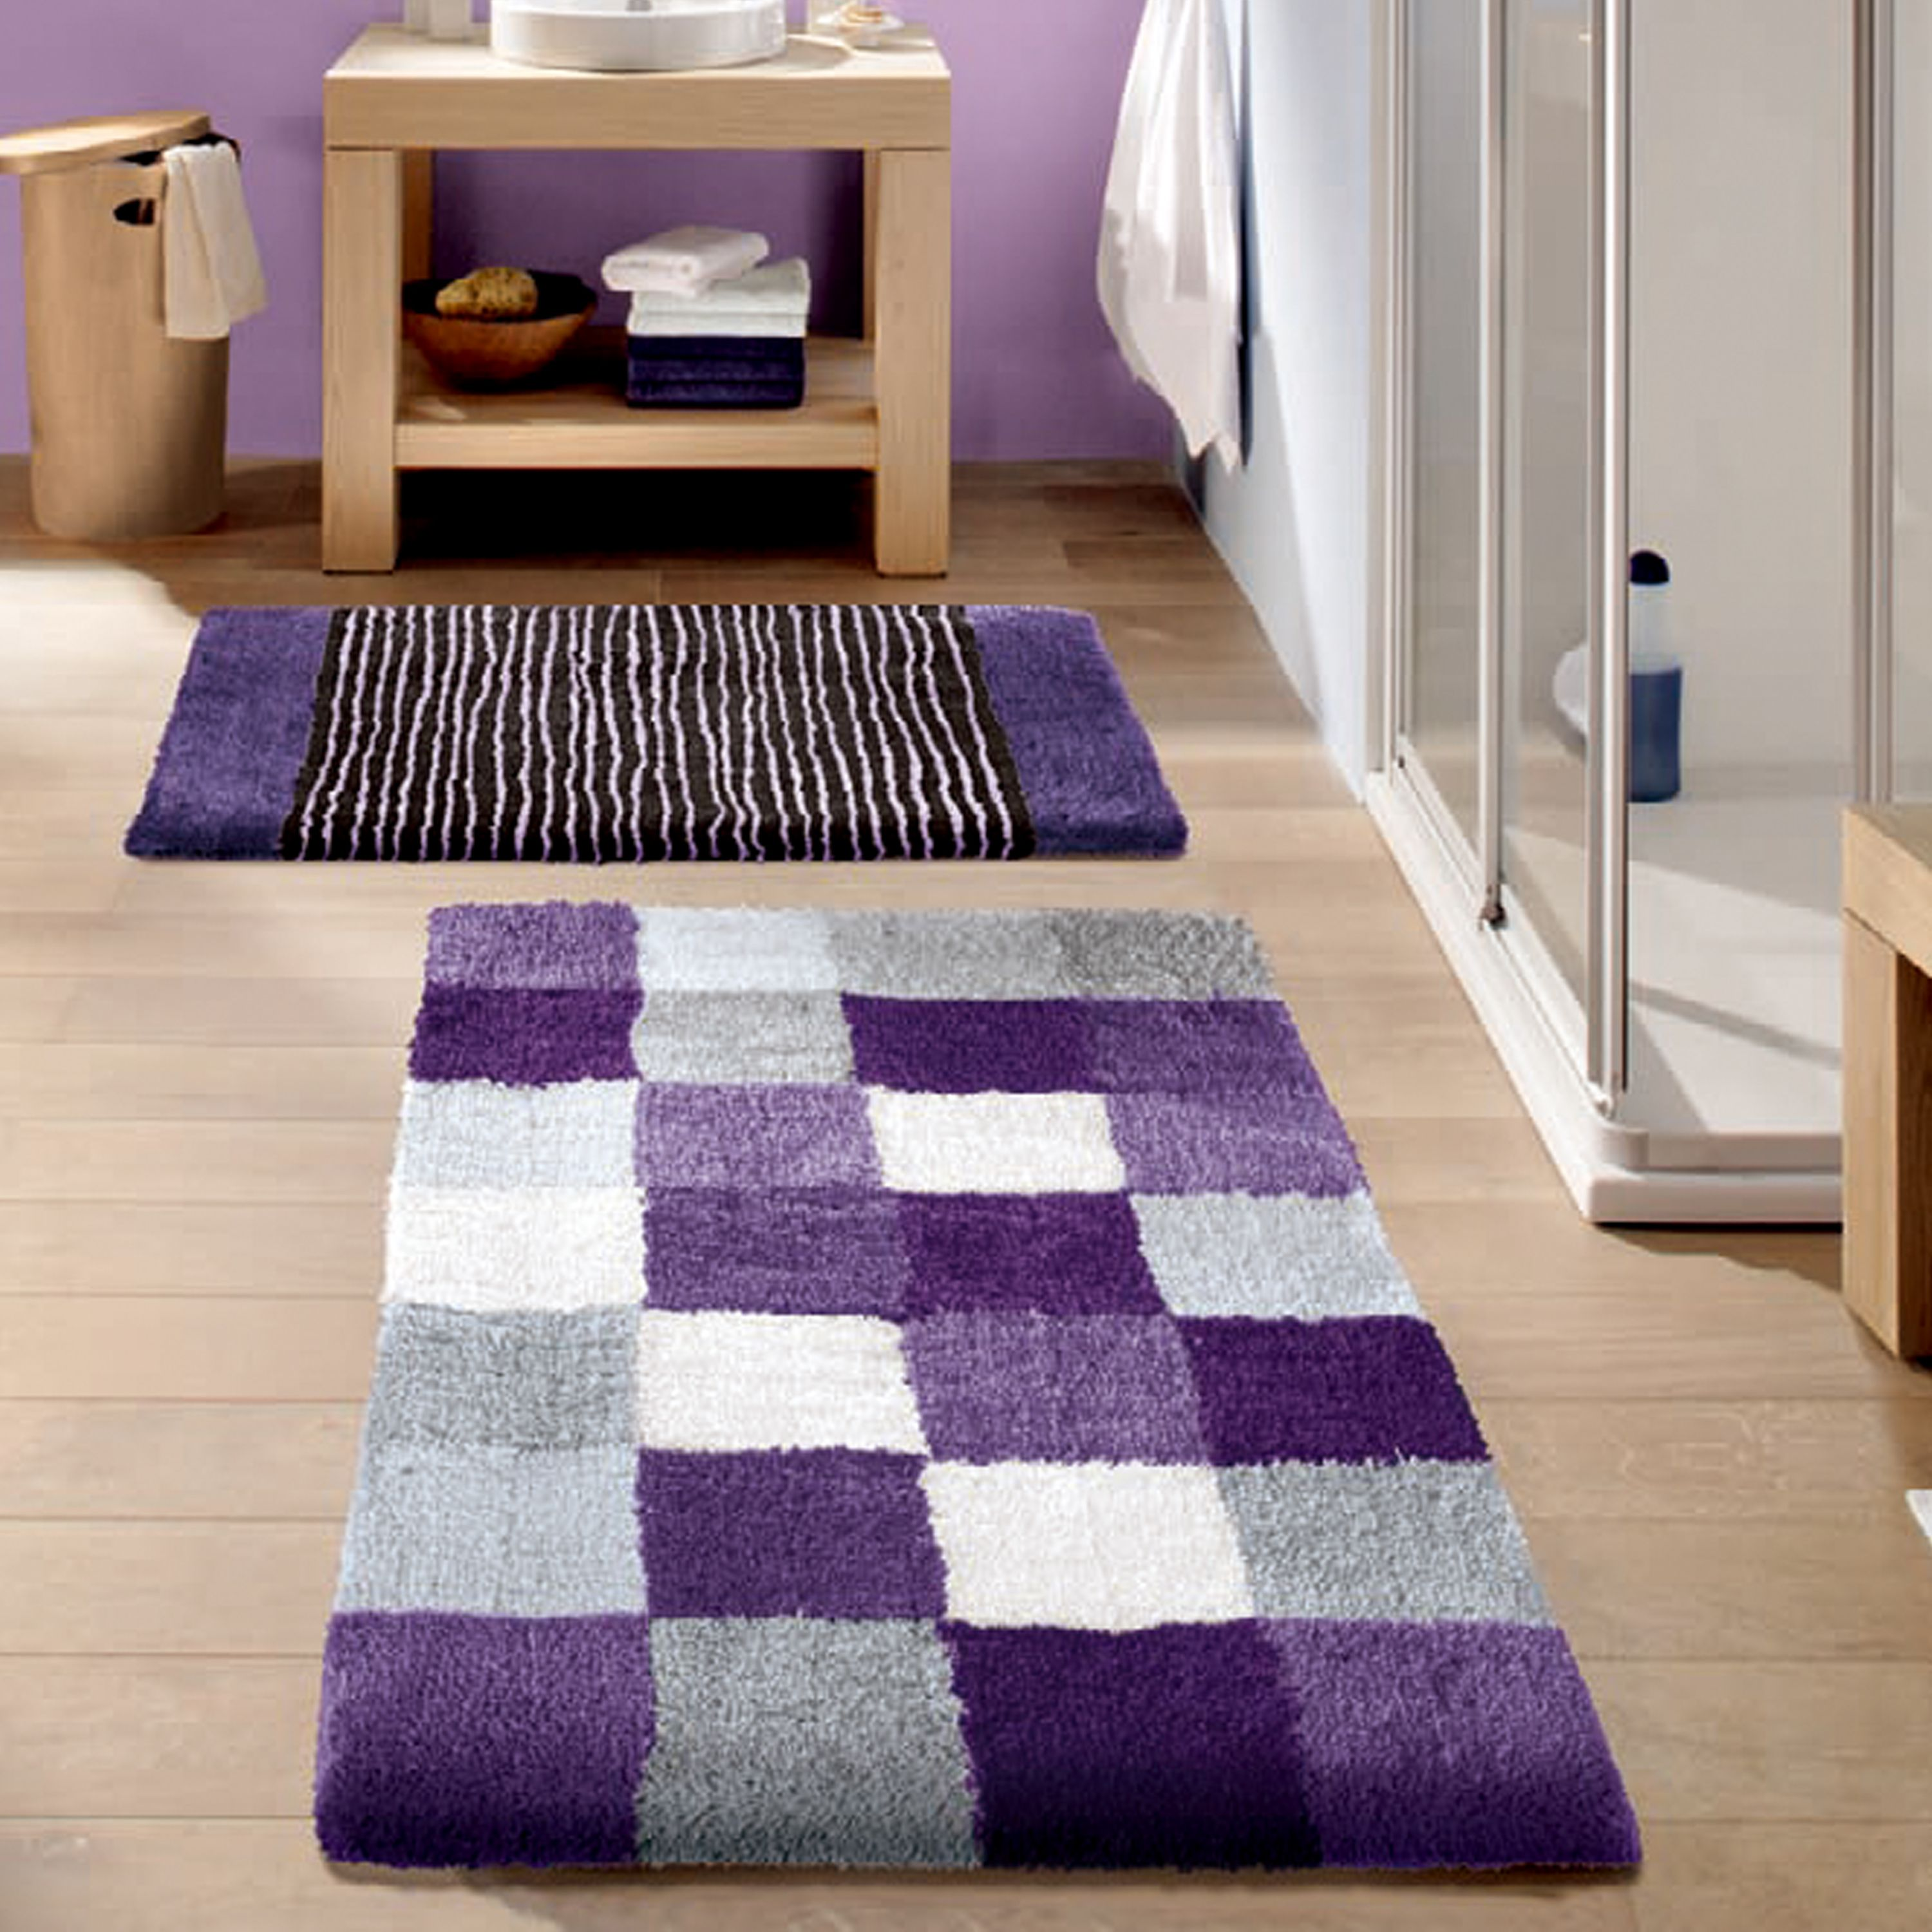 Purple Is A Very Creative Color Theme For A Bathroom It Is Simple And Relaxing And Just Beautiful From Ba Purple Master Bedroom Bathroom Rugs Purple Bedrooms [ 3000 x 3000 Pixel ]